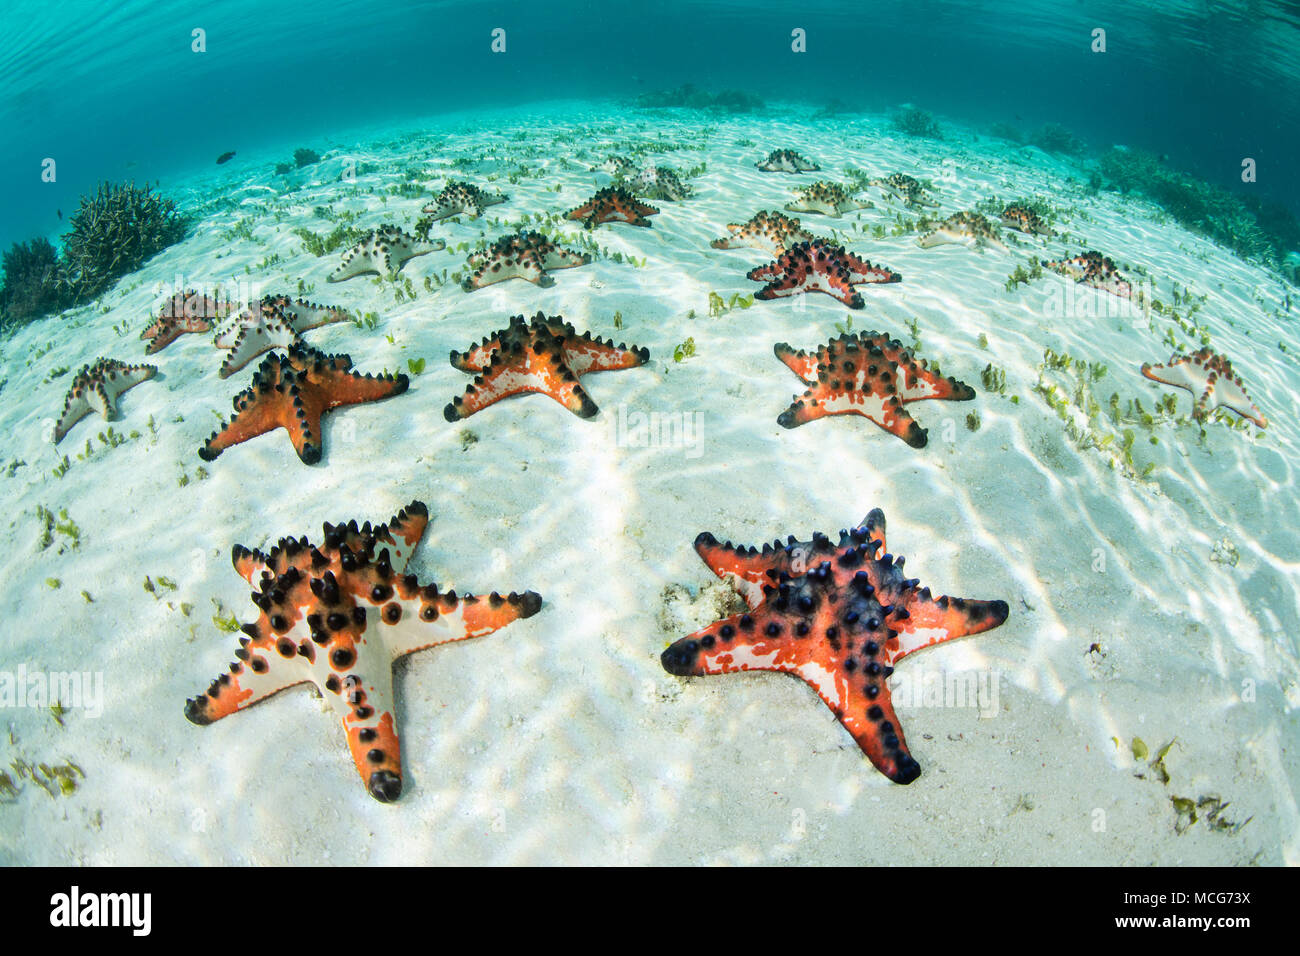 Colorful Chocolate chip starfish, Protoreaster nodosus, cover the sandy seafloor of a seagrass meadow in Raja Ampat, Indonesia. - Stock Image